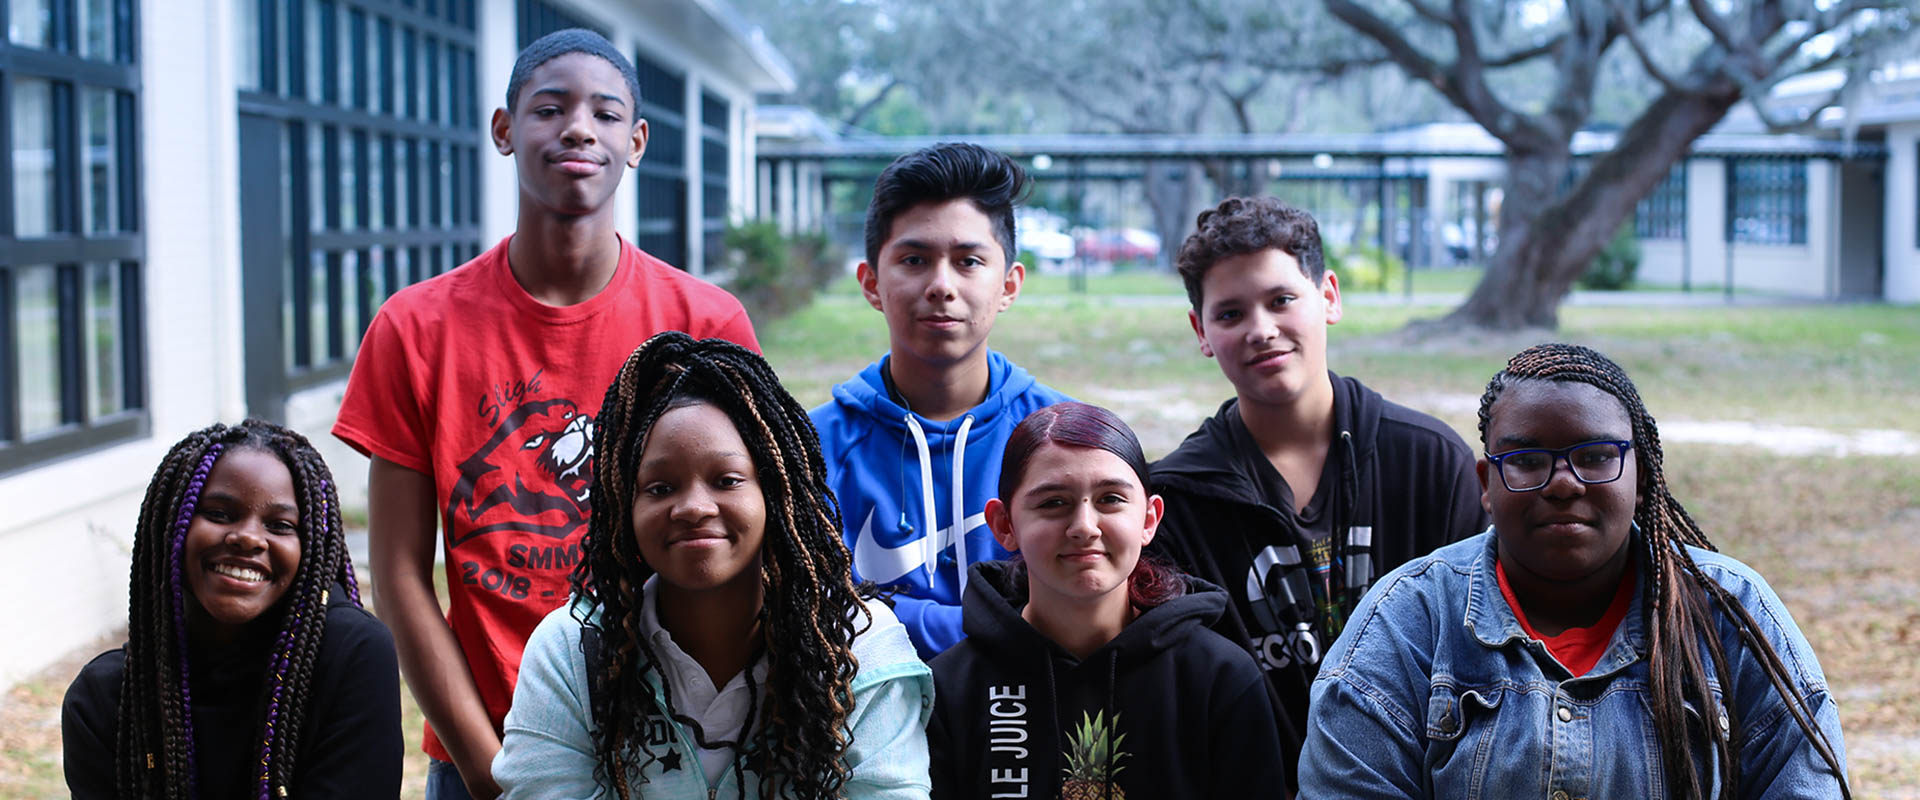 Group of 7 students standing outside in school courtyard, four people in front, three people standing behind, Hillsborough Education Foundation